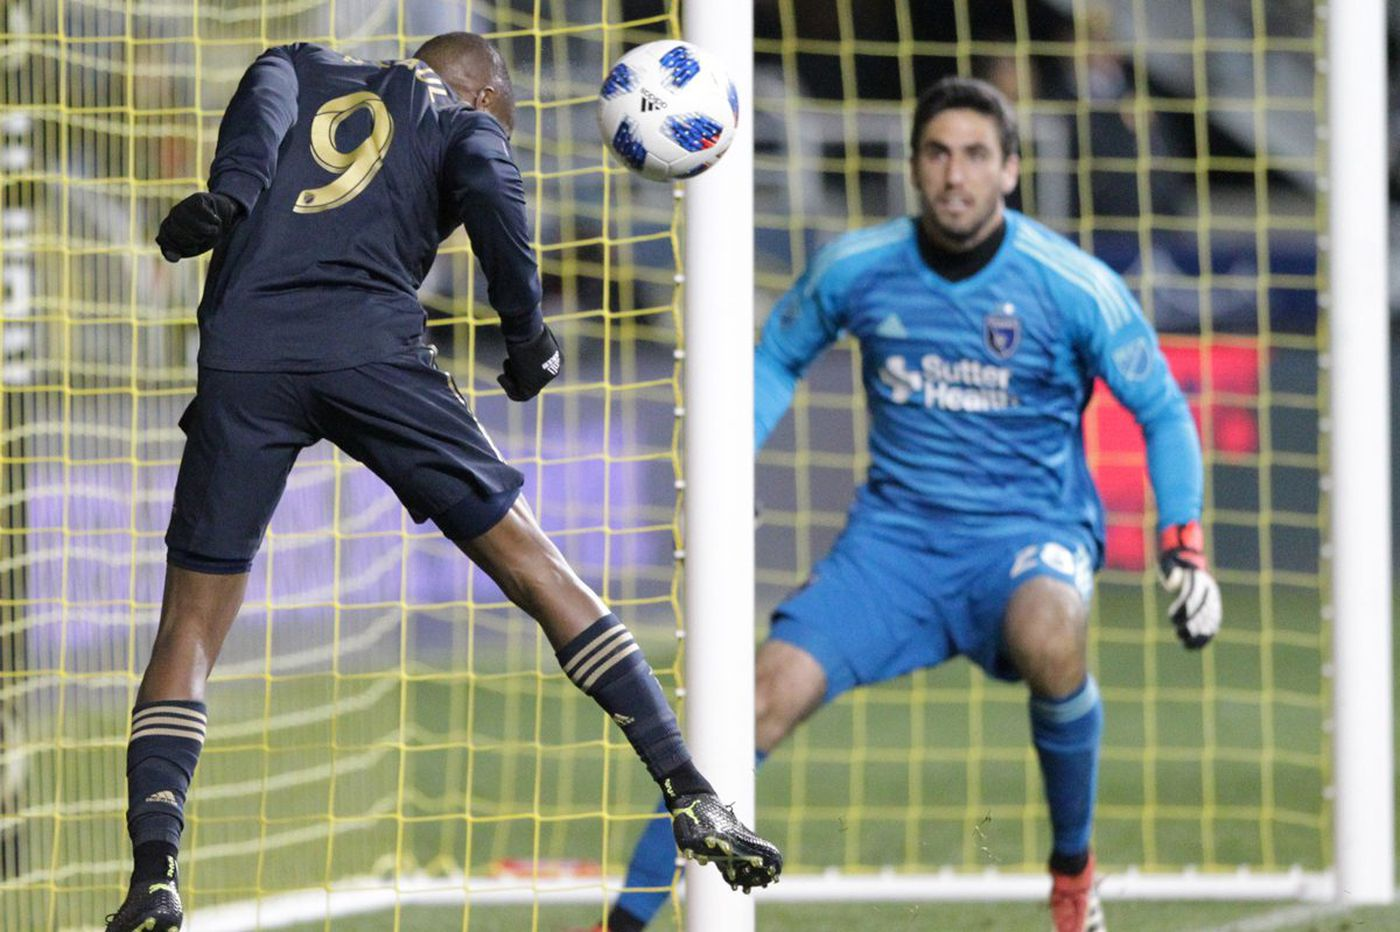 Union hope to snap out of scoring funk against Orlando City's struggling defense